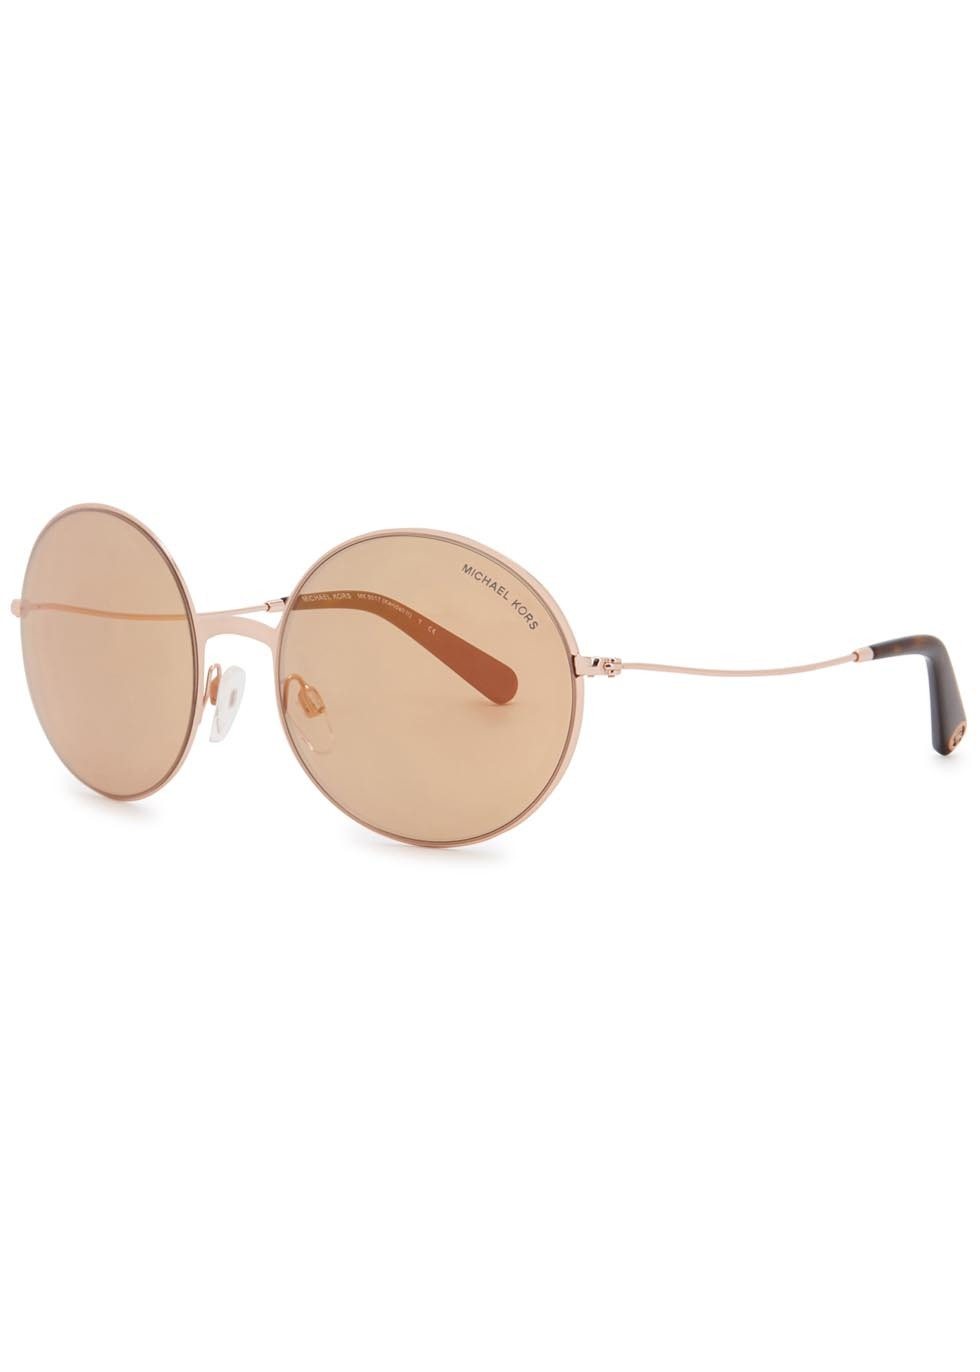 Kendall Ii Round Frame Sunglasses - predominant colour: gold; occasions: casual, holiday; style: round; size: standard; material: chain/metal; pattern: plain; finish: metallic; season: s/s 2016